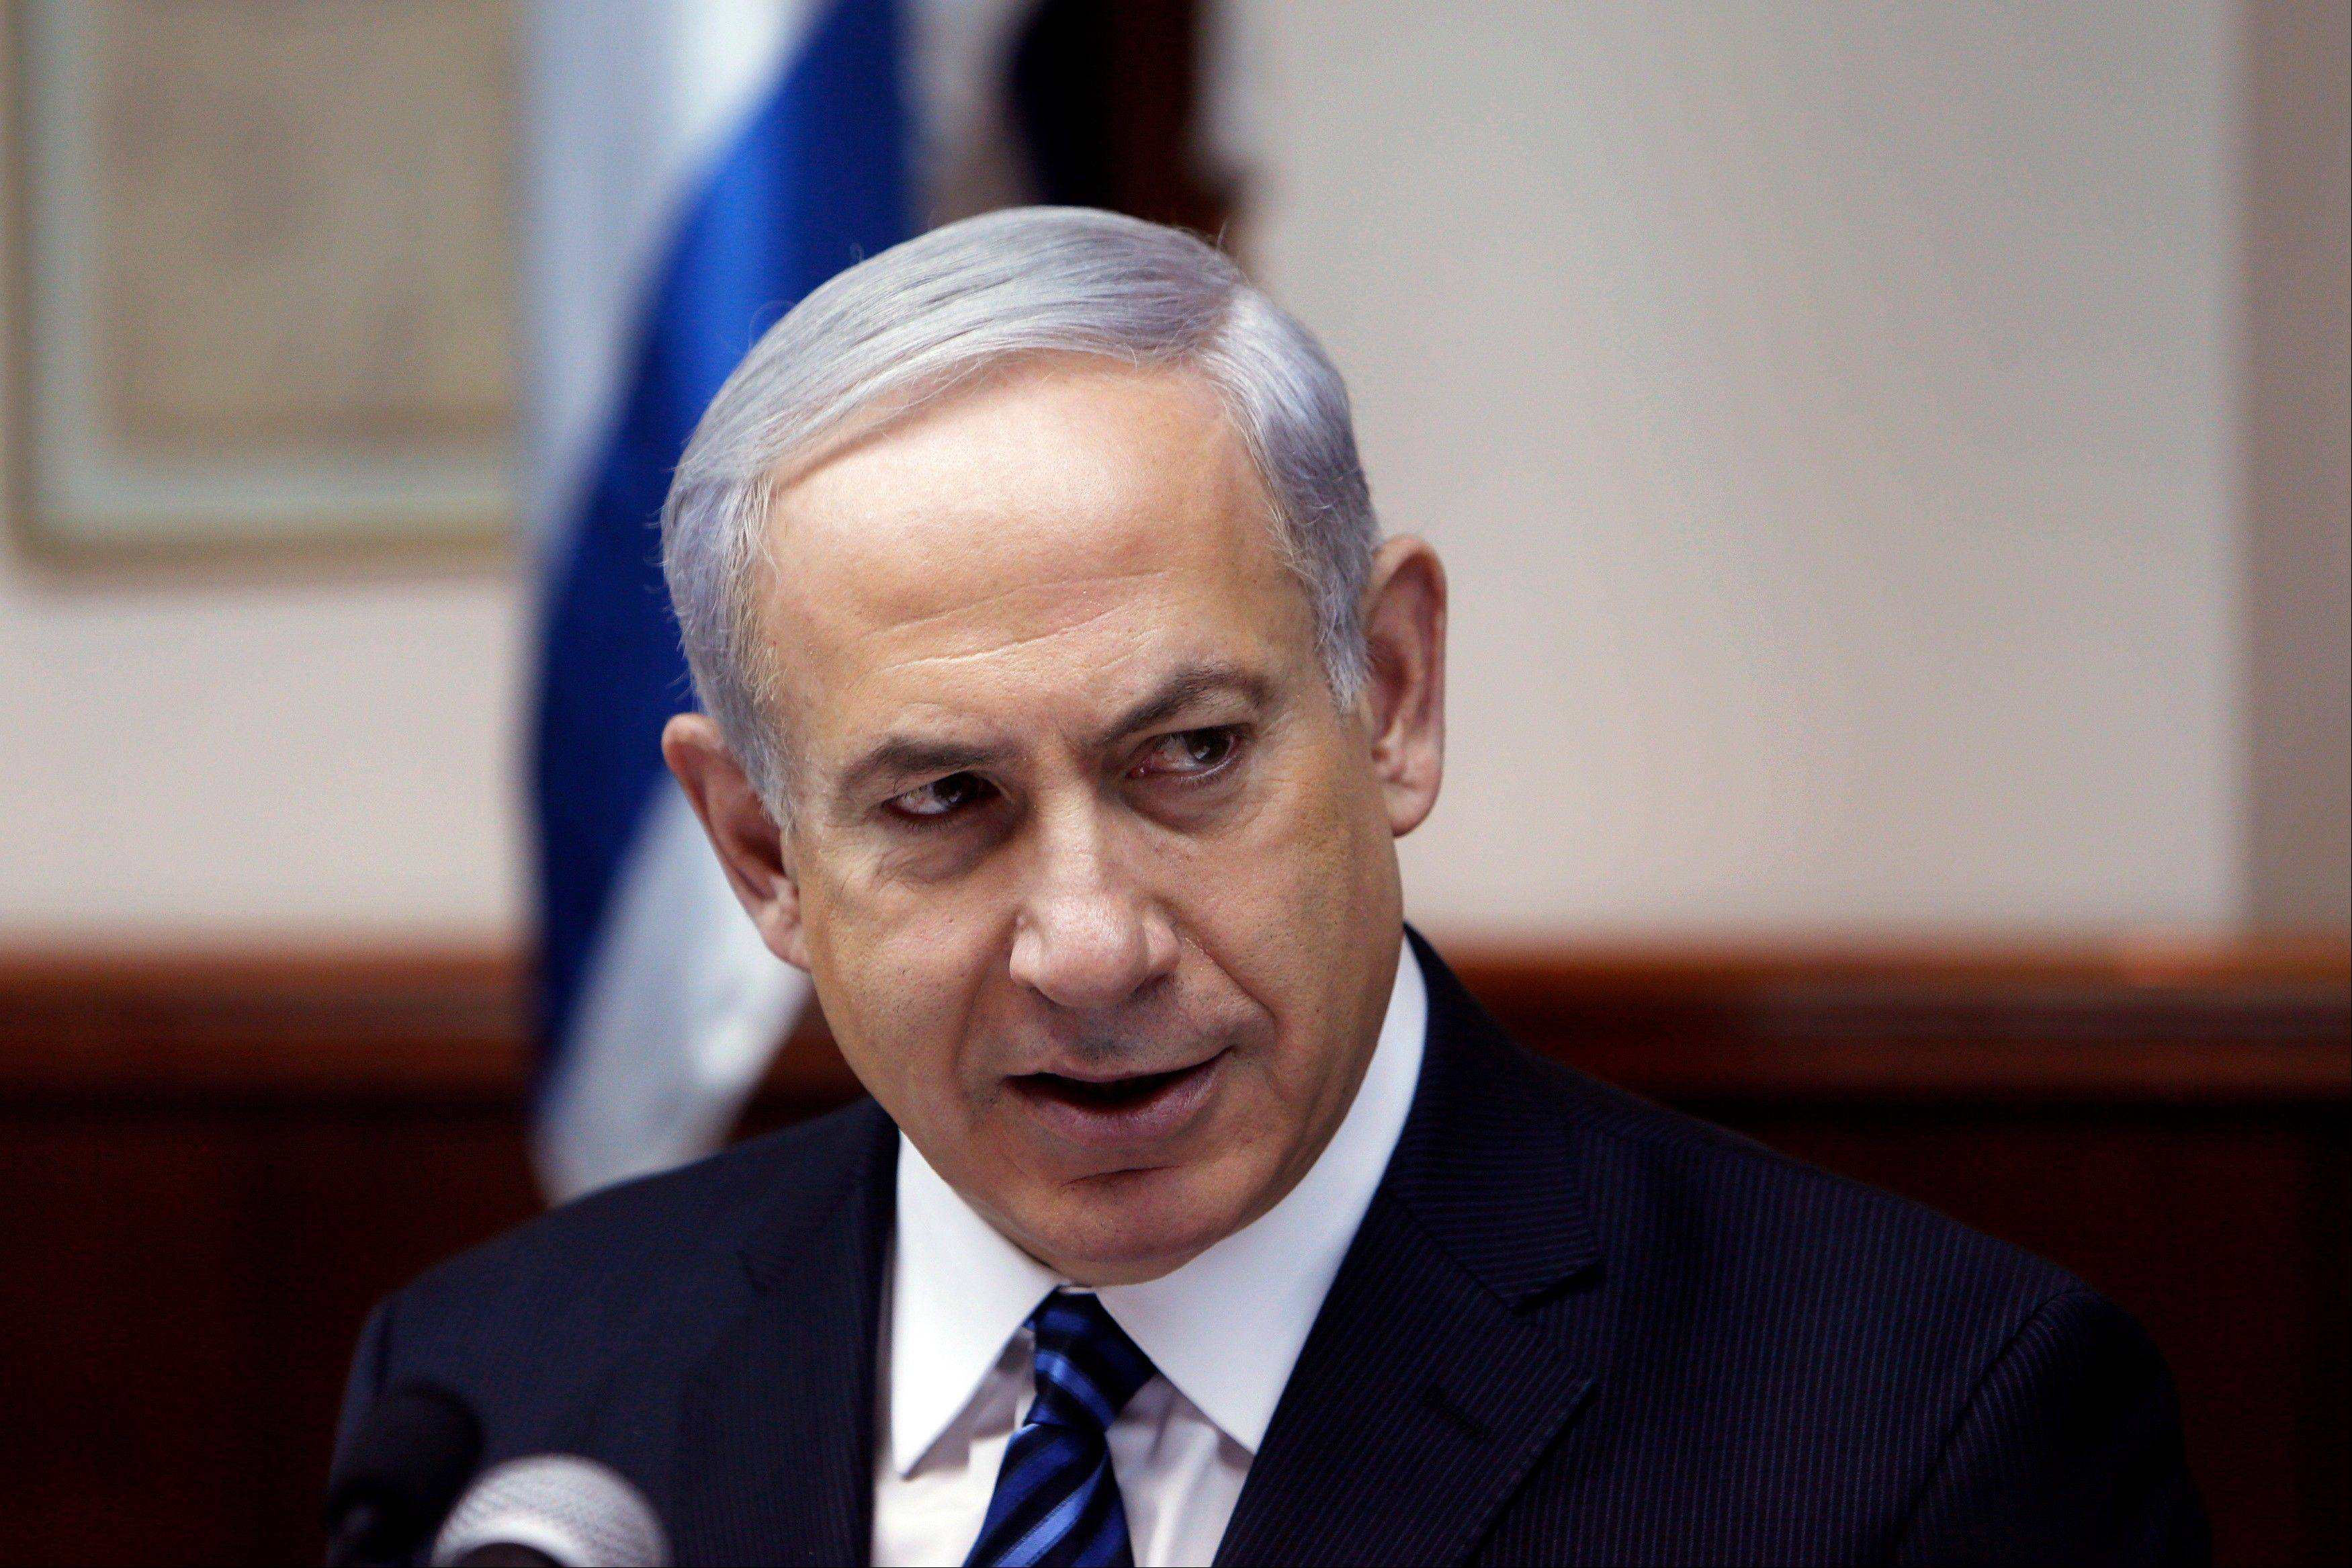 Israel's Prime Minister Benjamin Netanyahu speaks during the weekly cabinet meeting in Jerusalem Sunday.